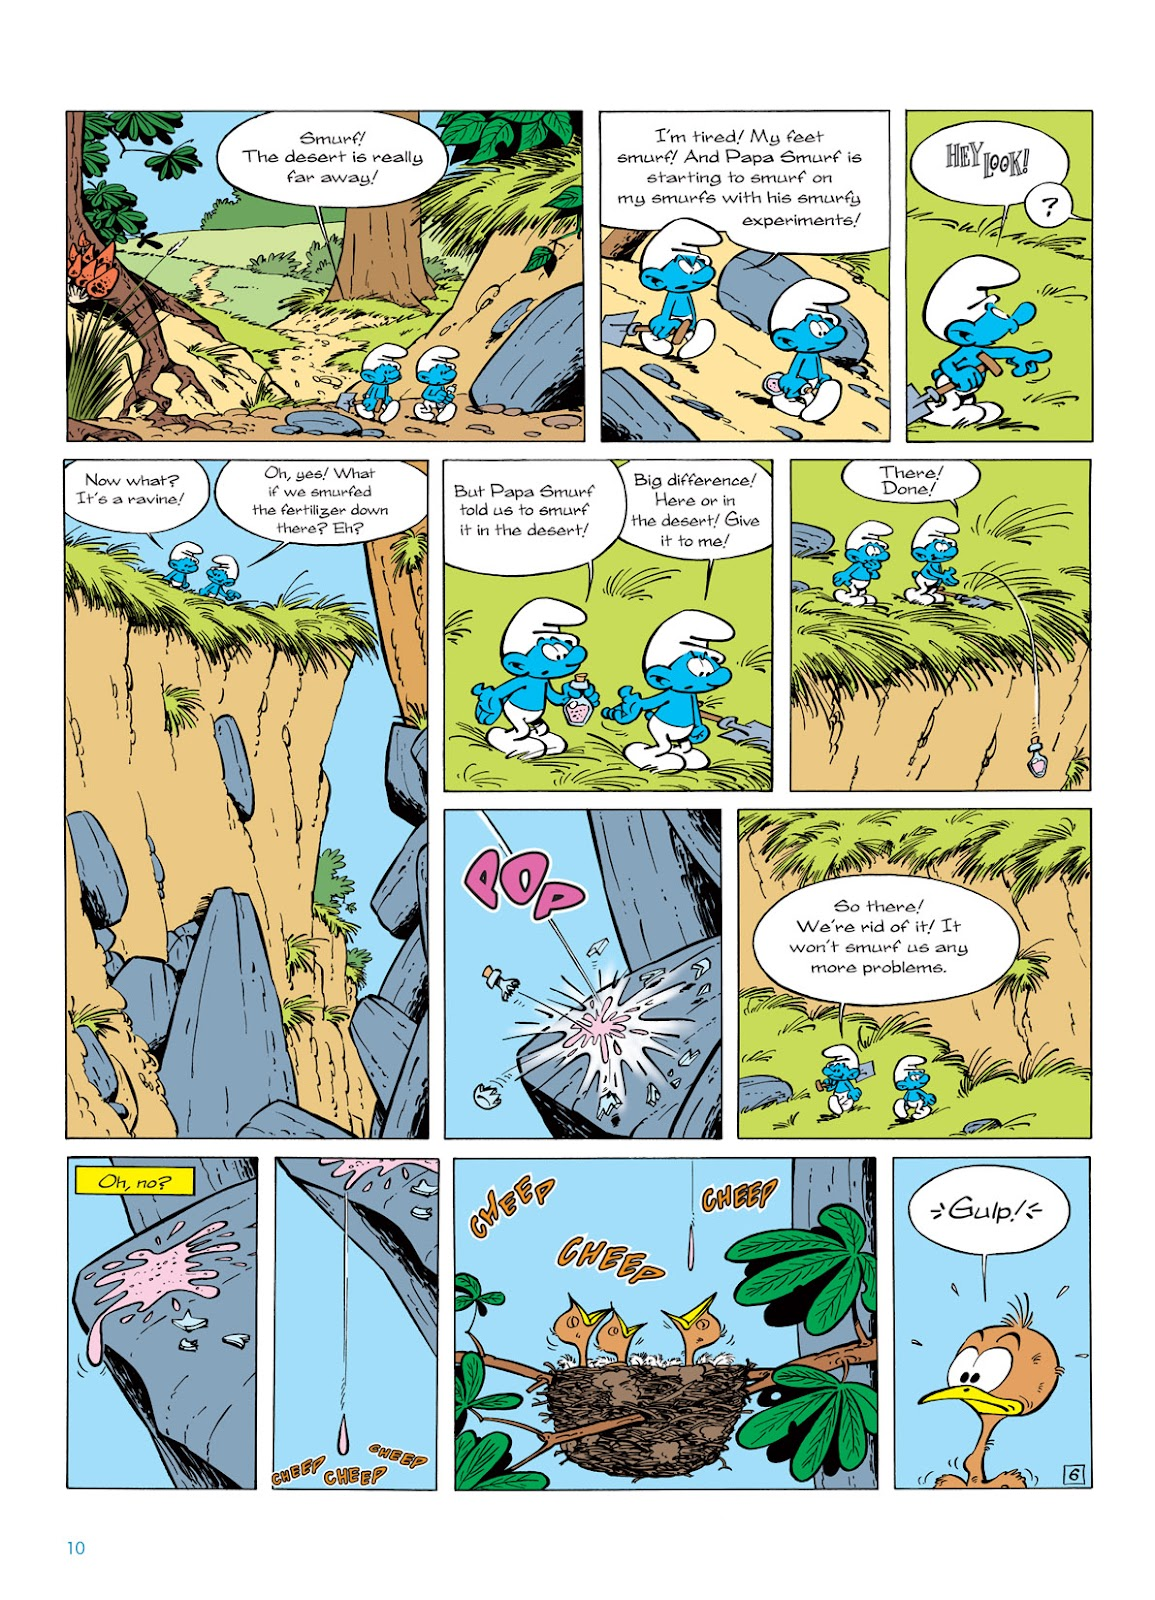 Read online The Smurfs comic -  Issue #6 - 10